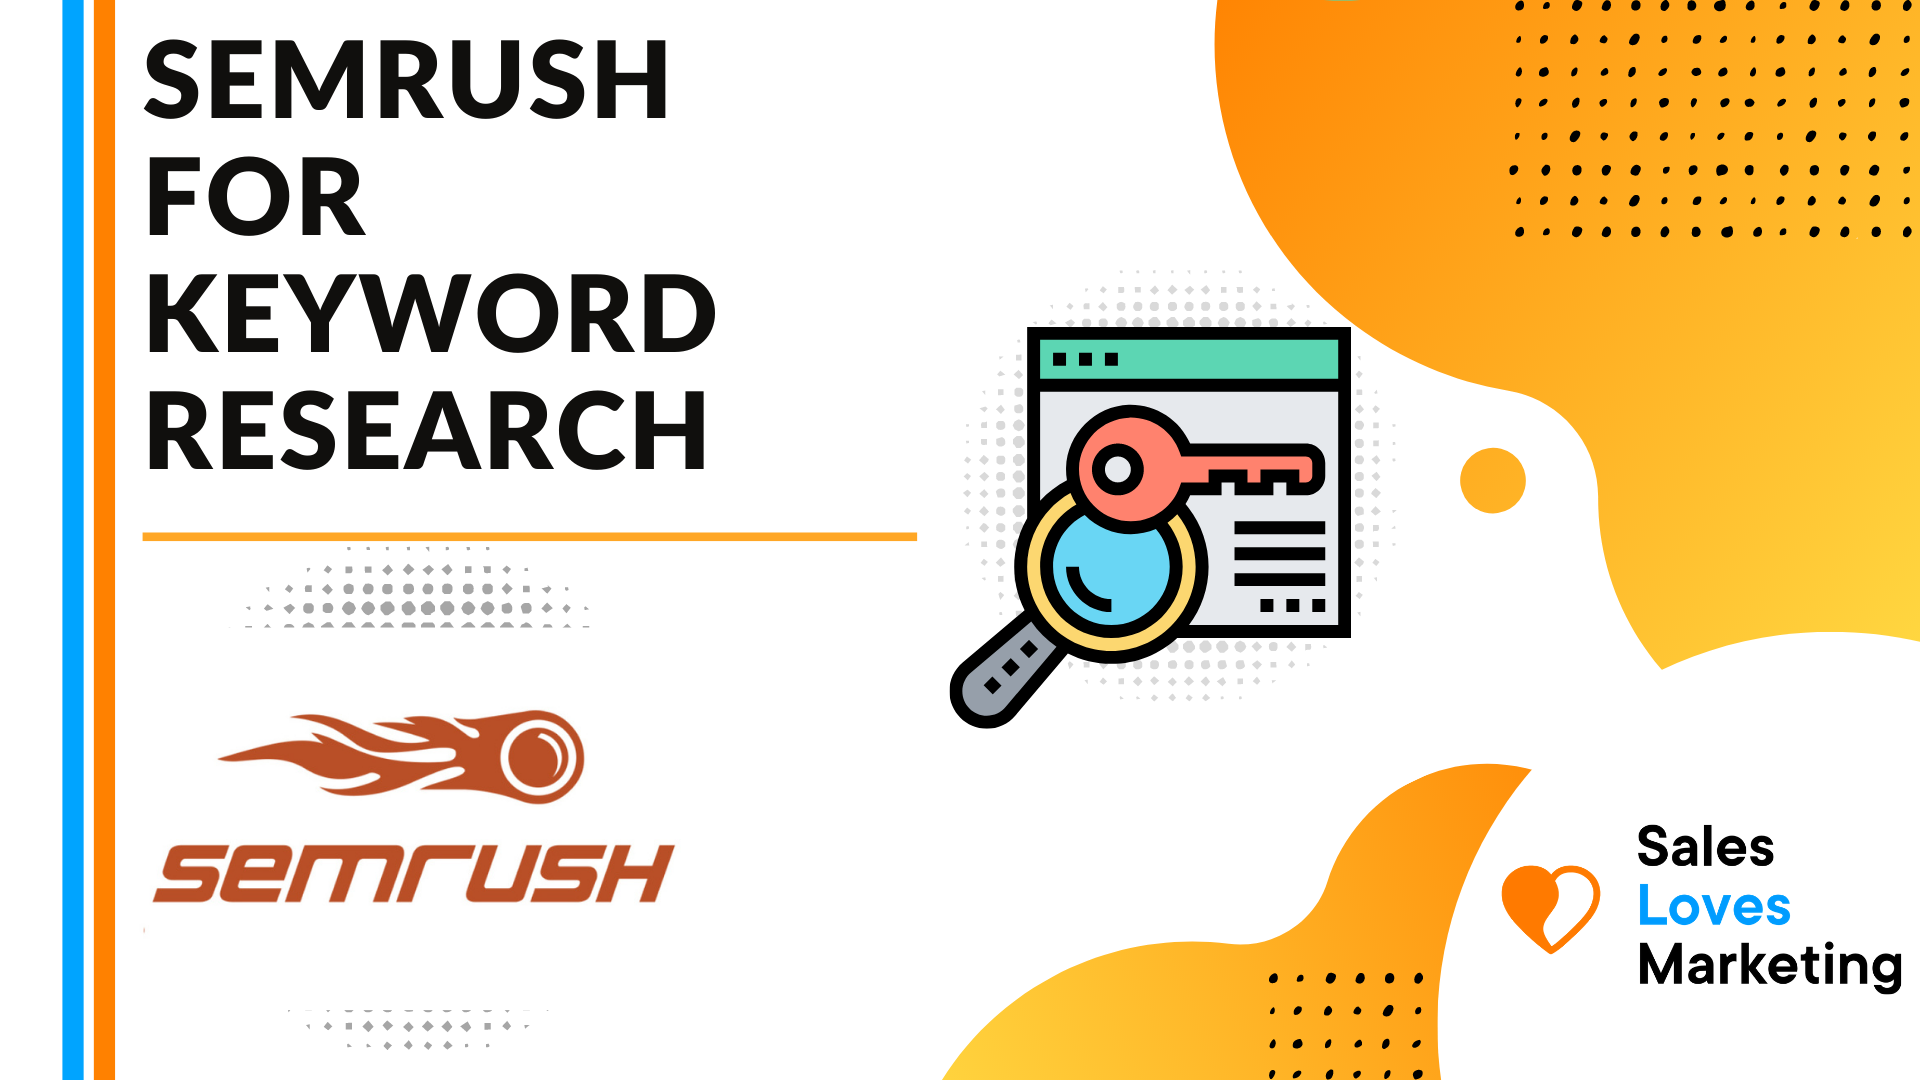 How to Use SEMRUSH For Keyword Research - Full Guide For Beginners